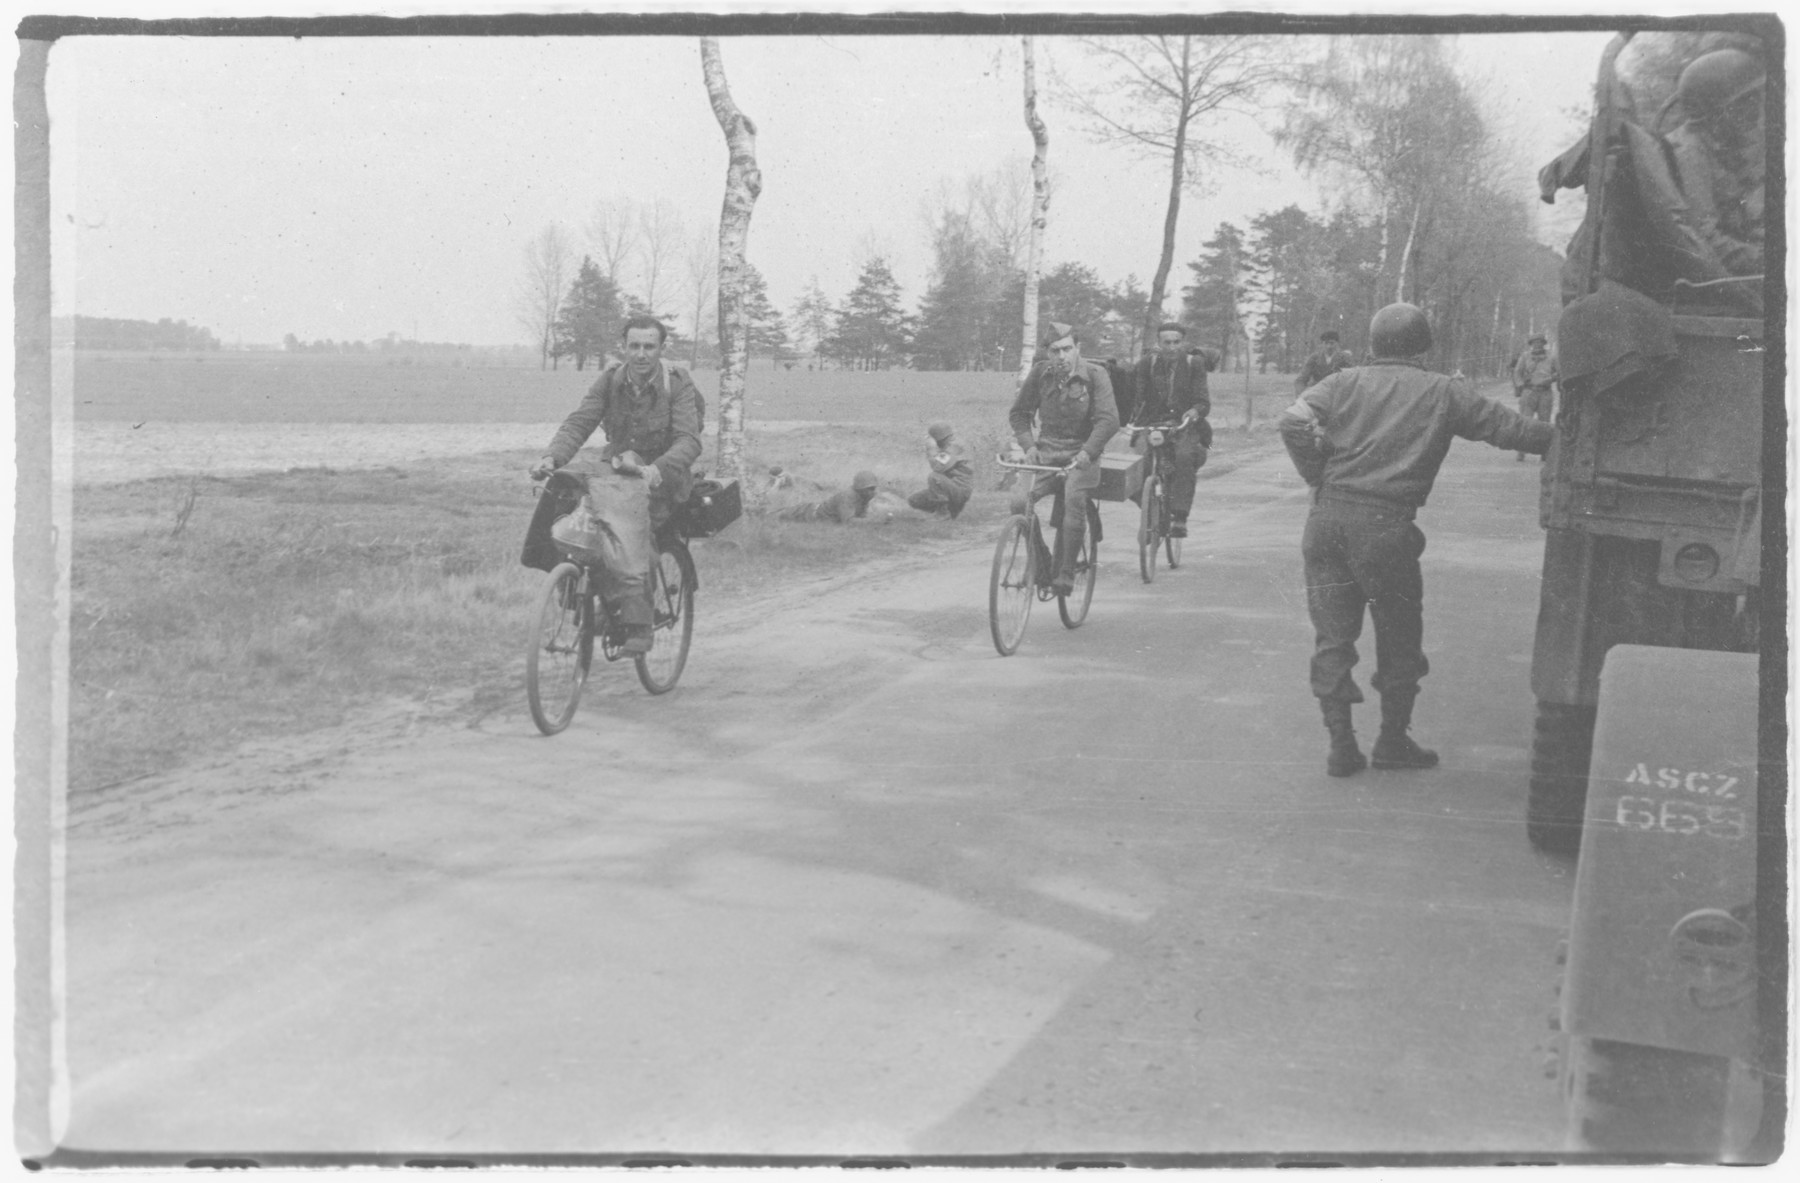 US Army officers from the 91st Evacuation Hospital Unit ride their bicycles.